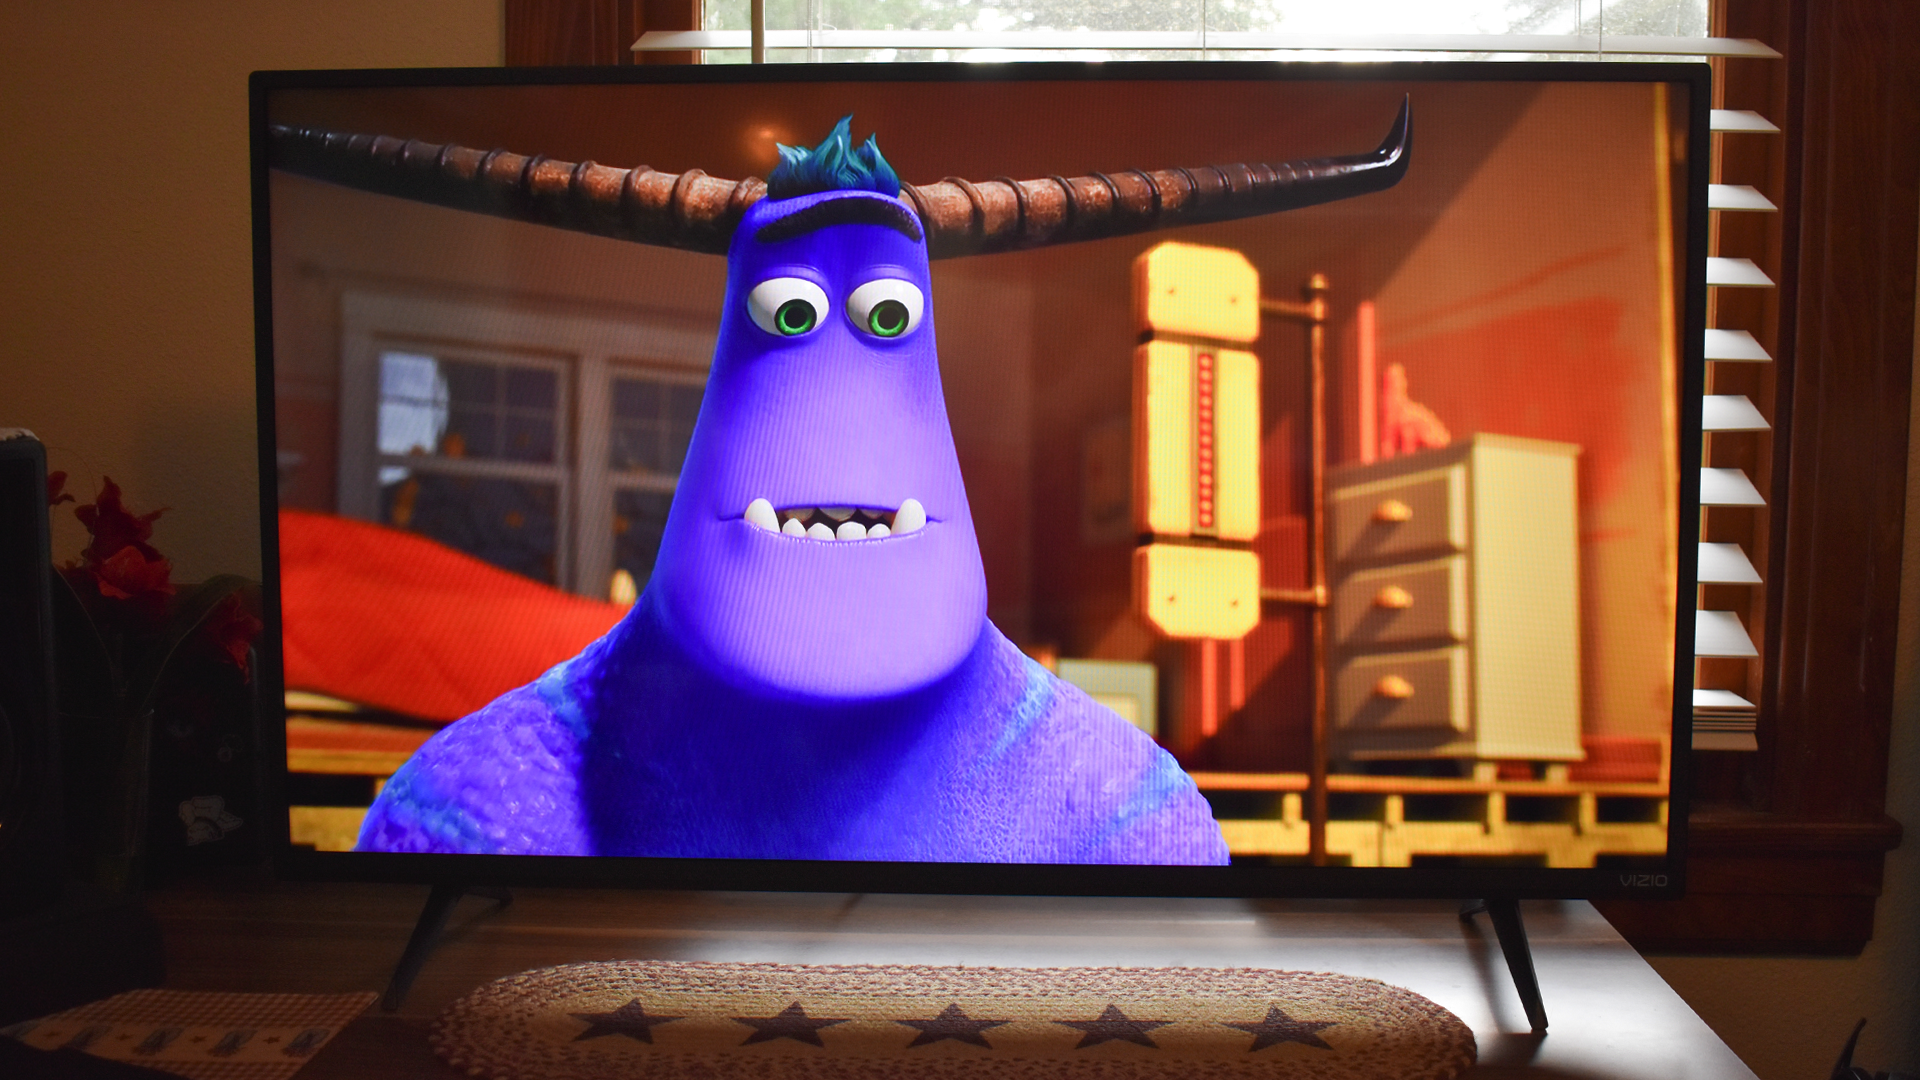 The Vizio TV playing Monsters Inc